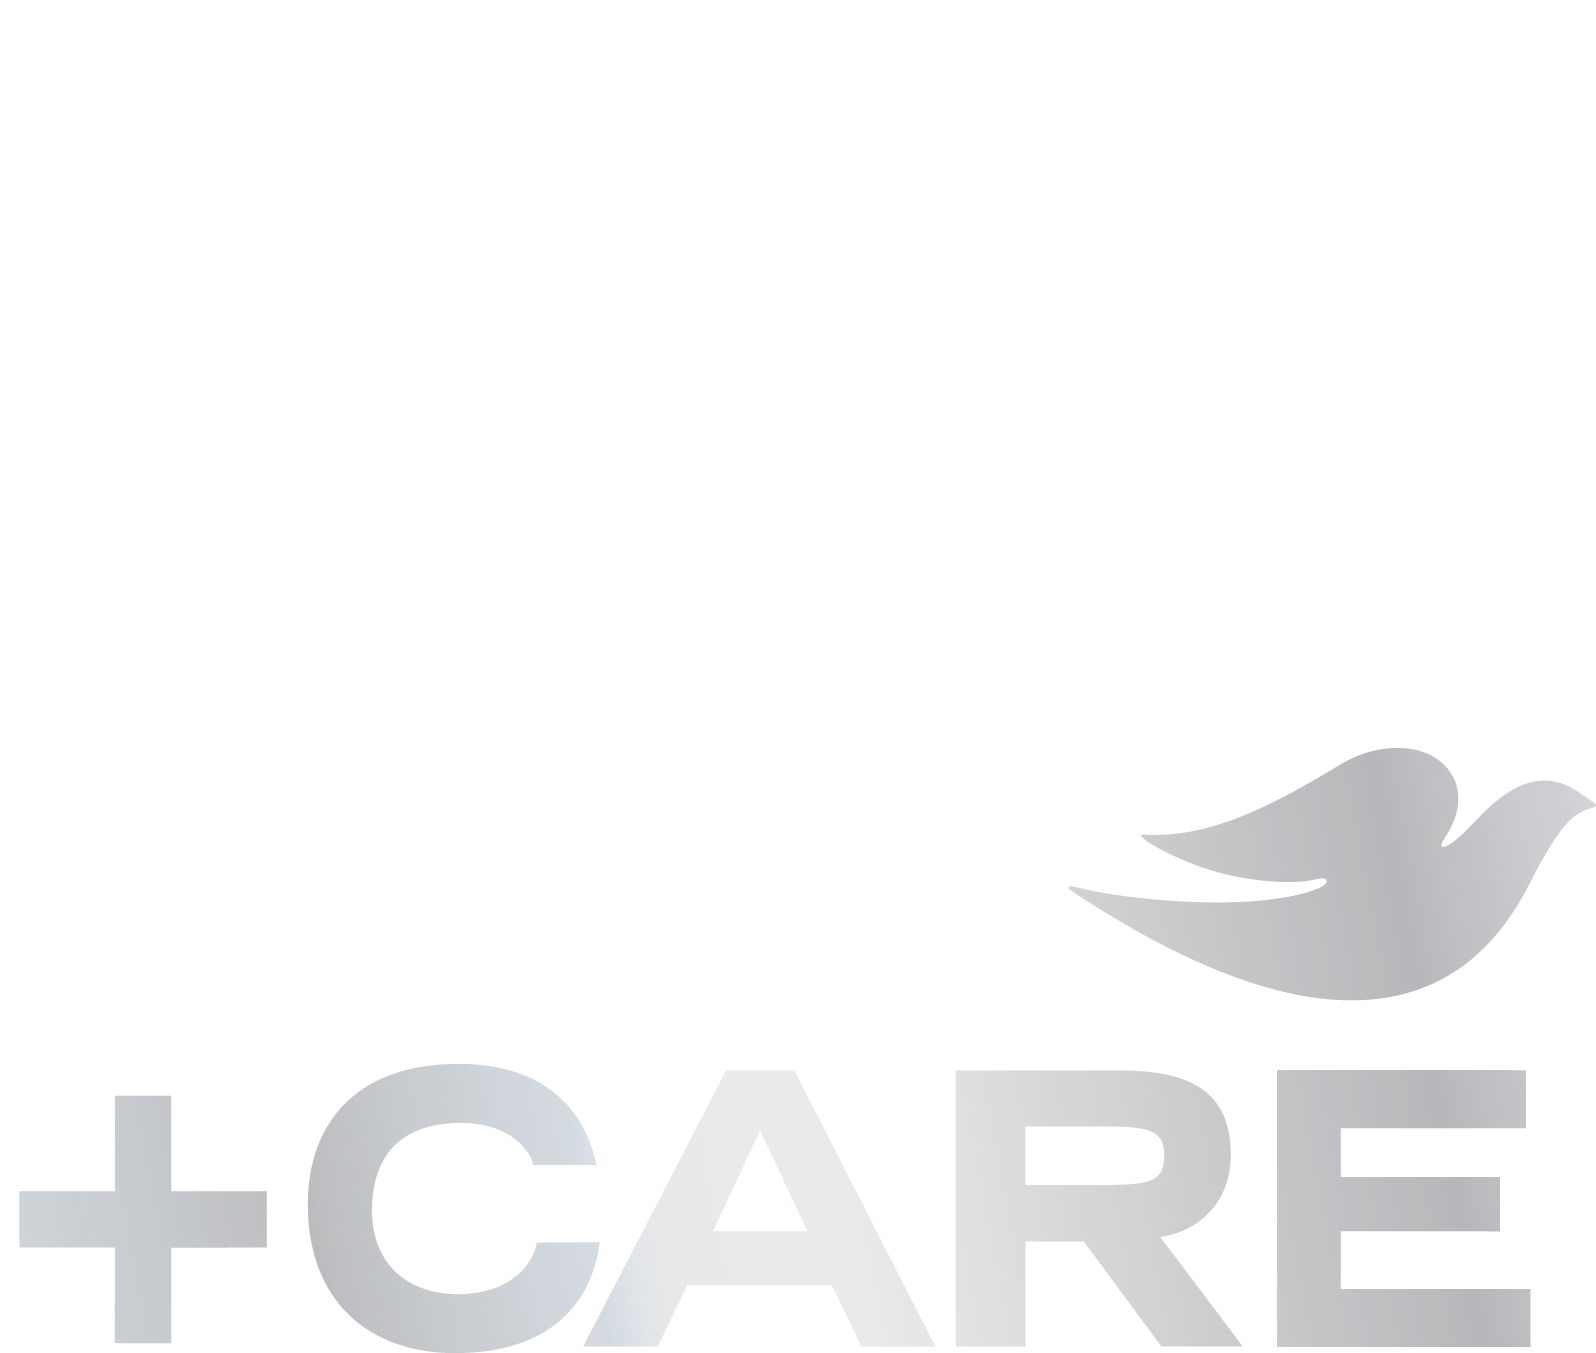 Download Dove Men Extra Fresh Body Wash 18 Oz Png Image With No Background Pngkey Com